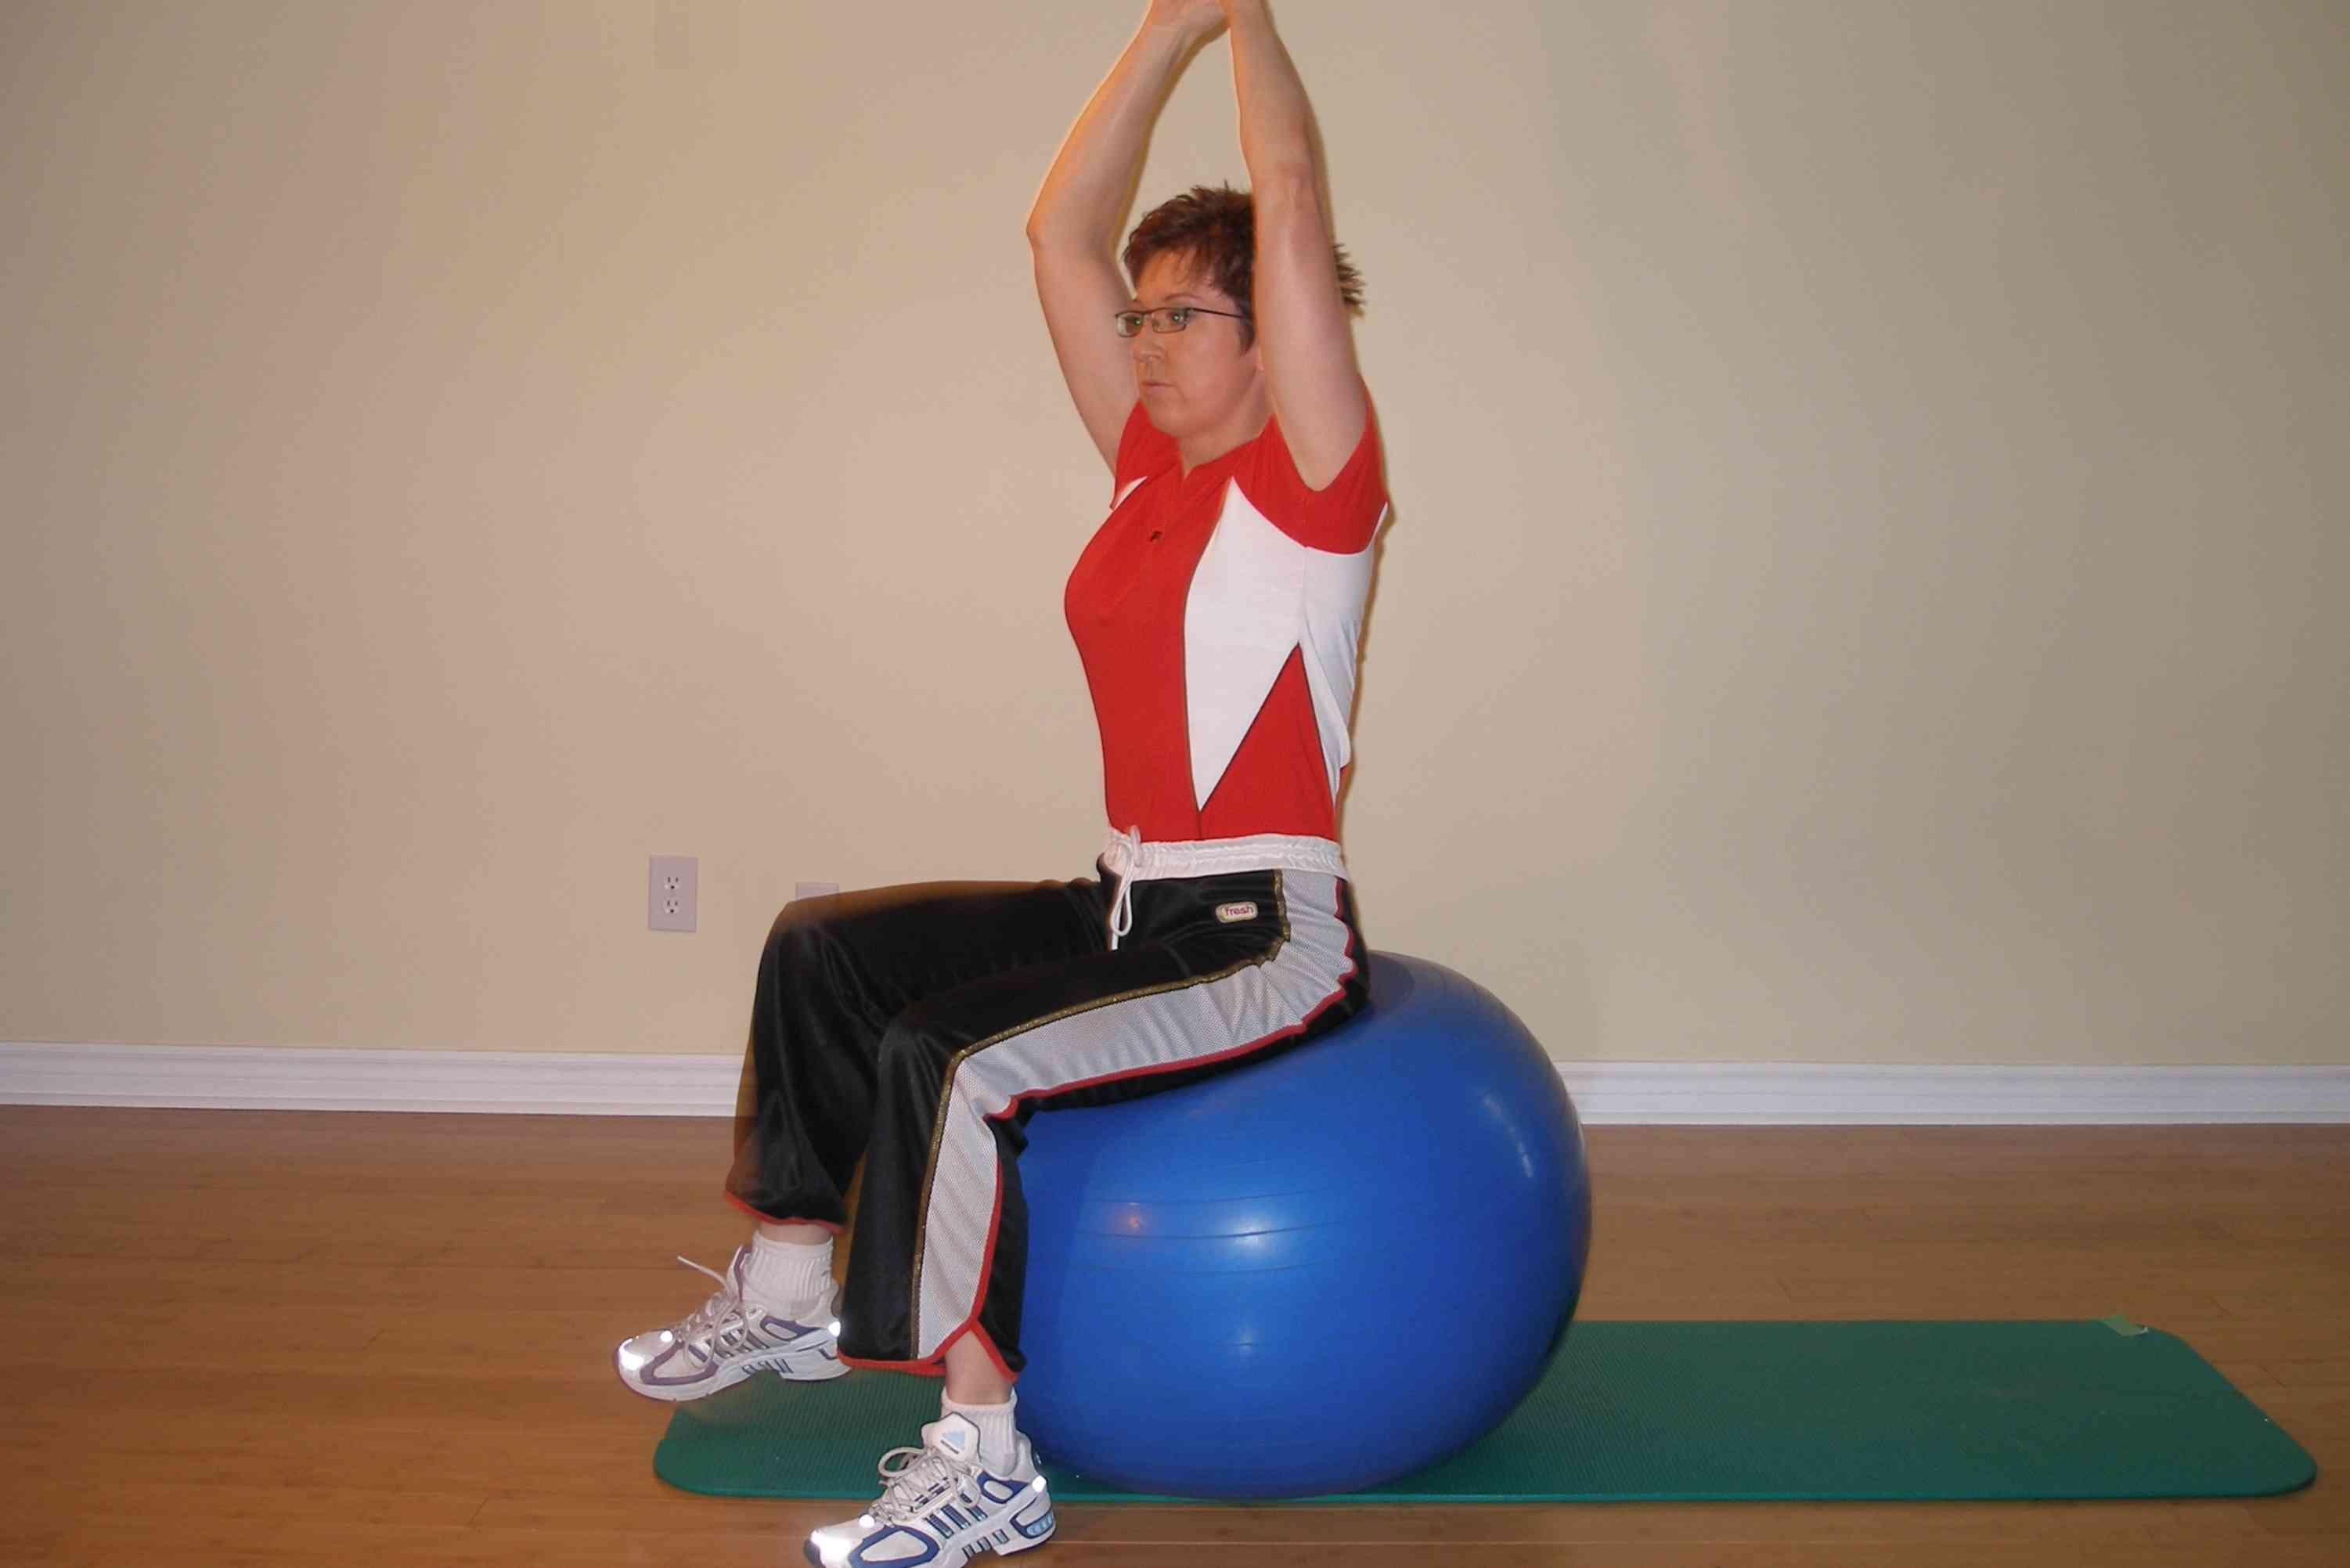 bilateral leg raise on the stability ball